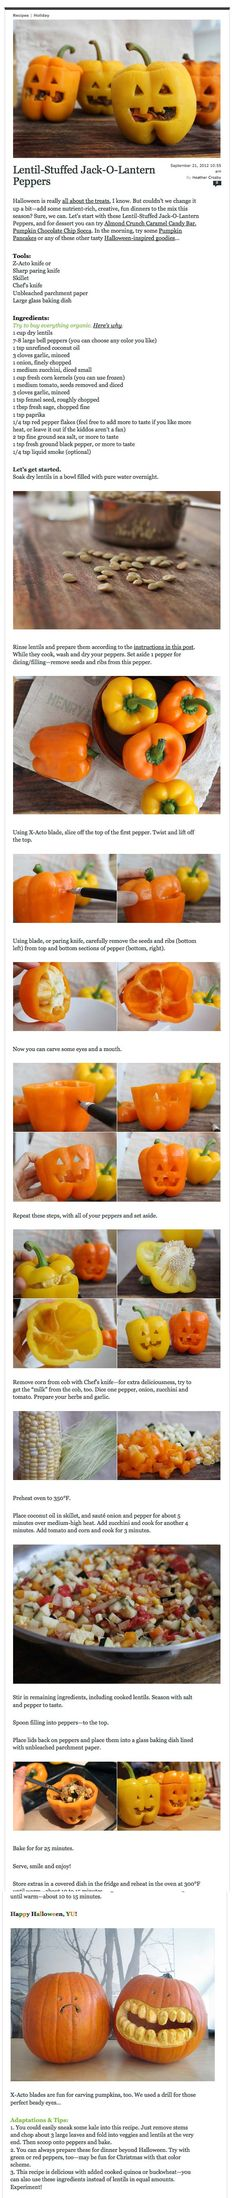 Make This Healthy Halloween Recipe Tonight: Stuffed Jack-O-Lantern Peppers | fitbottomedgirls.com